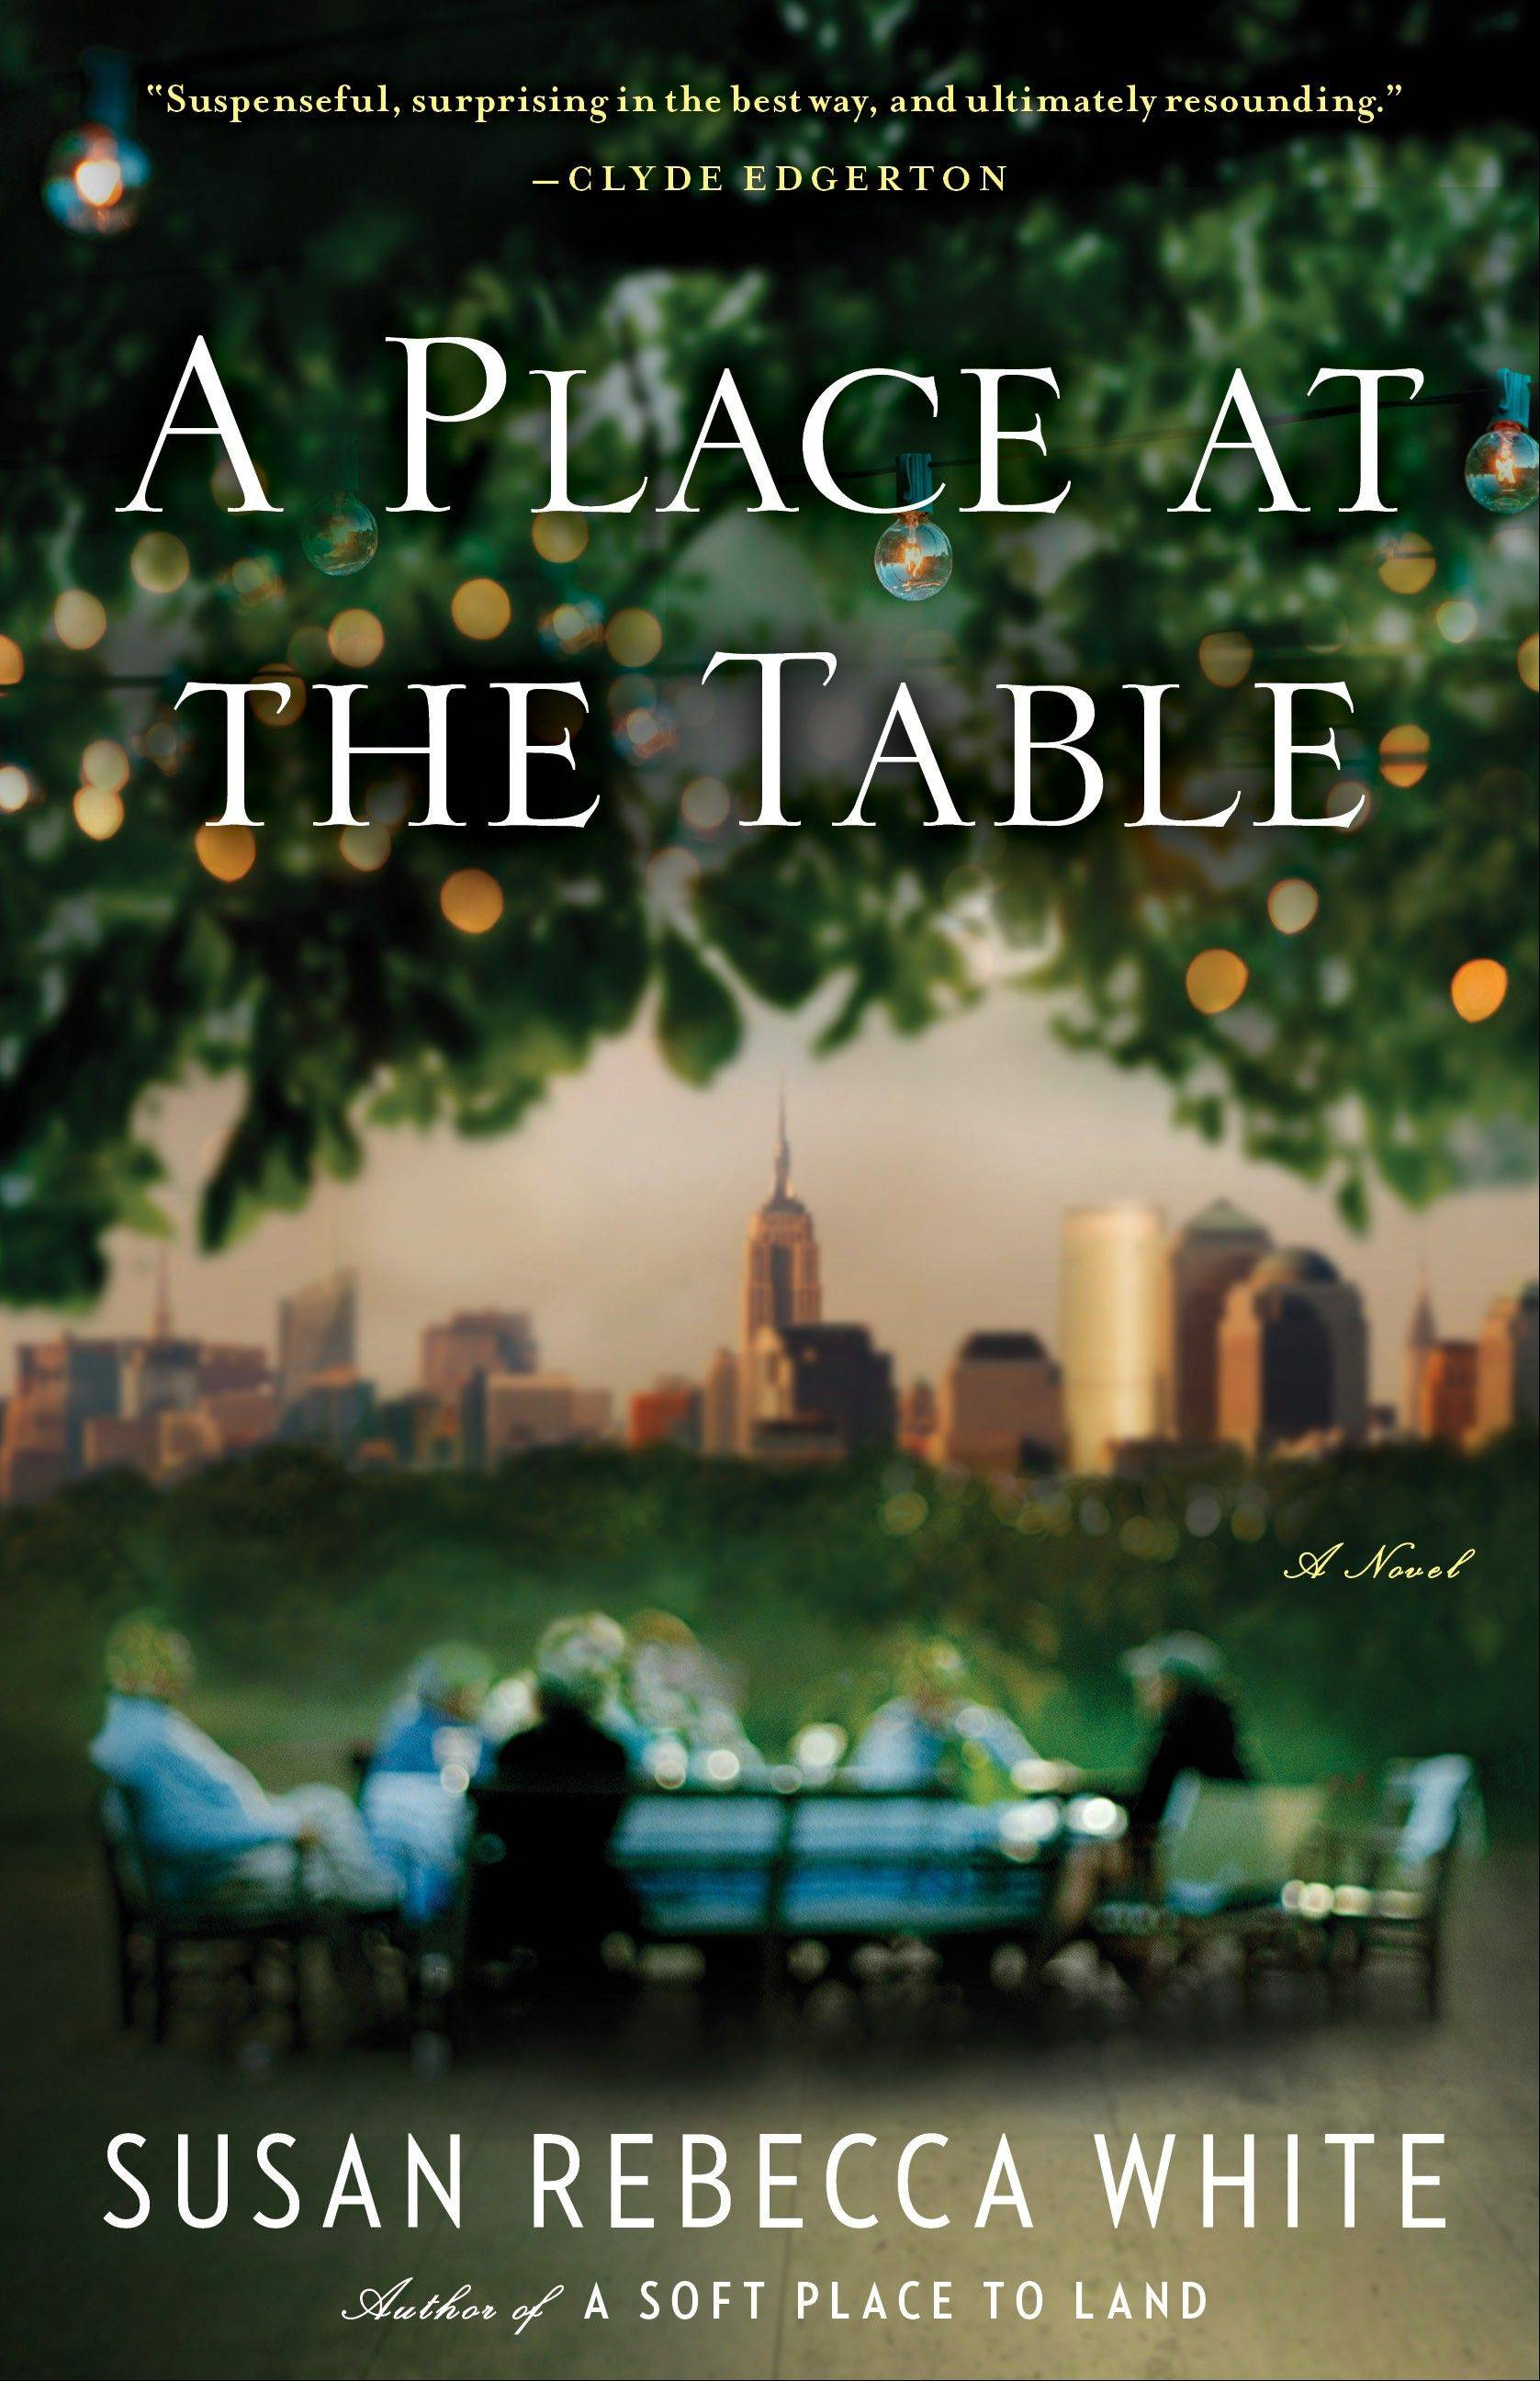 �A Place at the Table� by Susan Rebecca White